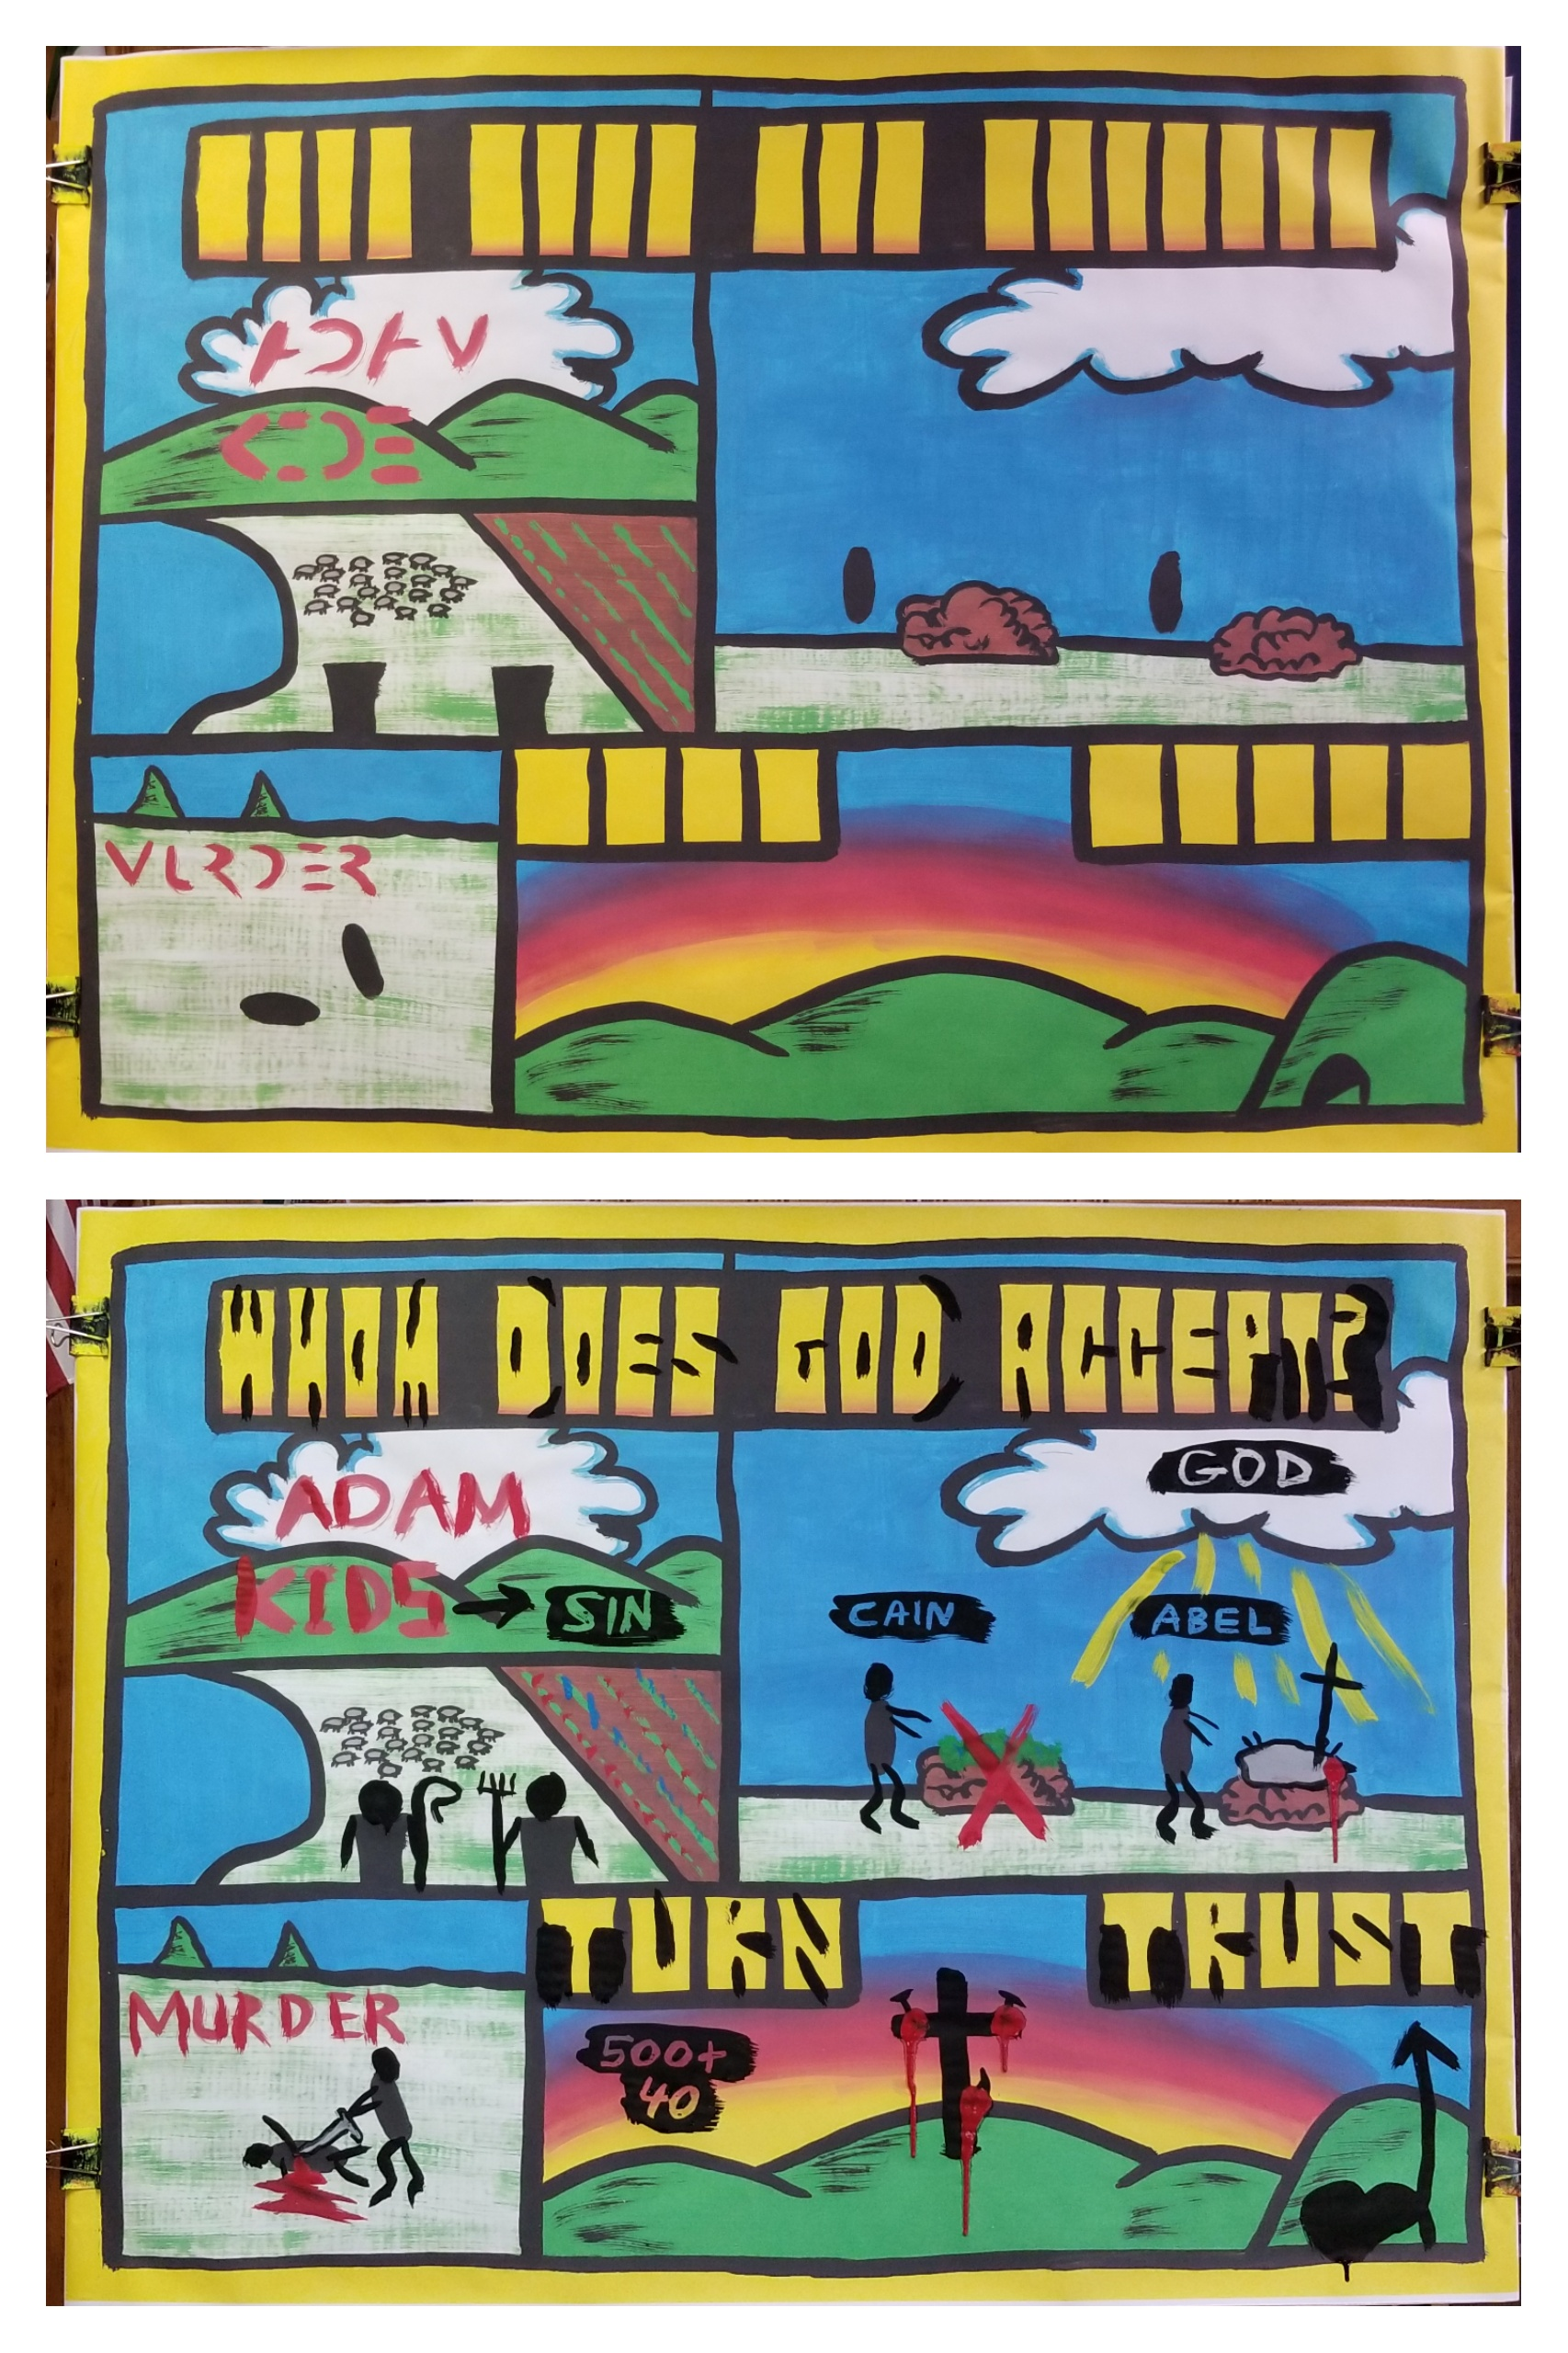 Part 5 in 'The Gospel Through Creation.' We learned that God demanded a blood sacrifice because sin must be paid for with death. Abel obeyed and offered a blood sacrifice in faith. In contrast, Cain did what seemed right in his eyes and gave a produce offering.   God accepted Abel. Cain had the opportunity to admit what he did was wrong, but instead he tragically killed his brother.   Jesus Christ is the fulfillment of the animal sacrificial system. We can be like Cain and do what is right in our own eyes, and get what we deserve - the Lake of Fire. Or we can be like Abel and believe God, and choose a blood sacrifice - Jesus Christ.   Jesus' blood sacrifice covers us if we turn from our sin and trust in the gospel! There was a very clear gospel presentation and everyone was exhorted to turn to Jesus. About 8 Campers indicated that they trusted in Jesus. Praise God! Please pray for the kids who heard this vital message!!!